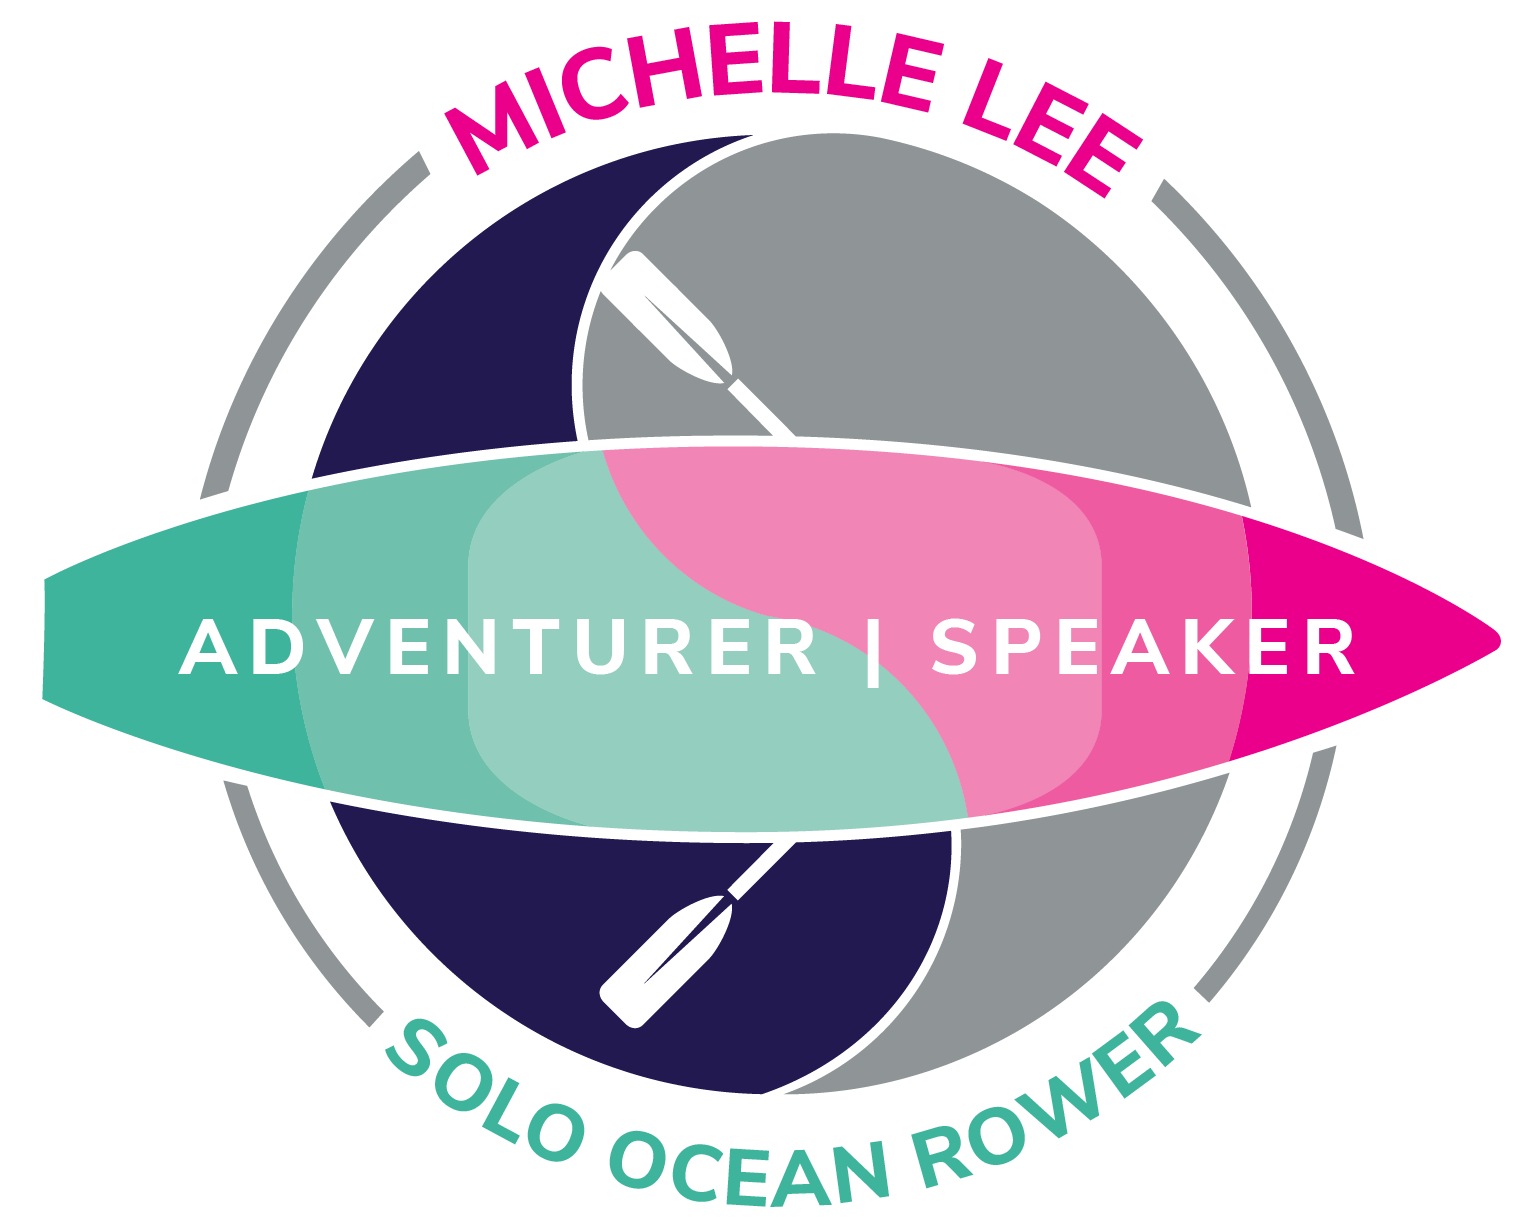 Michelle Lee Speaker